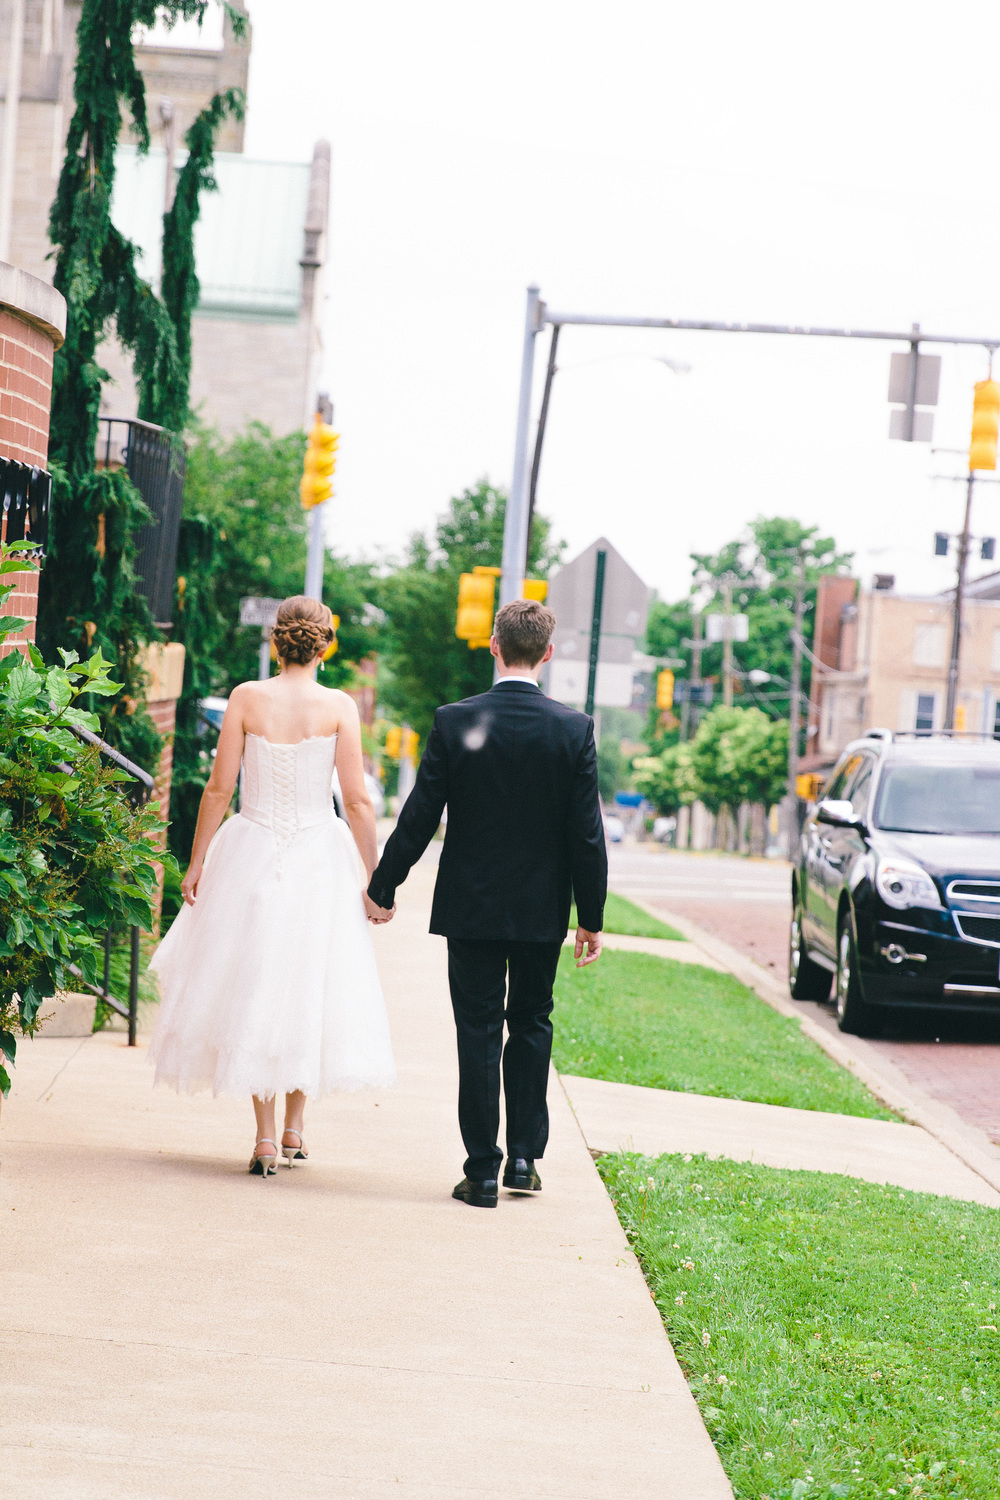 jeff-and-tess-wedding---may-30th-2015_18146340808_o.jpg